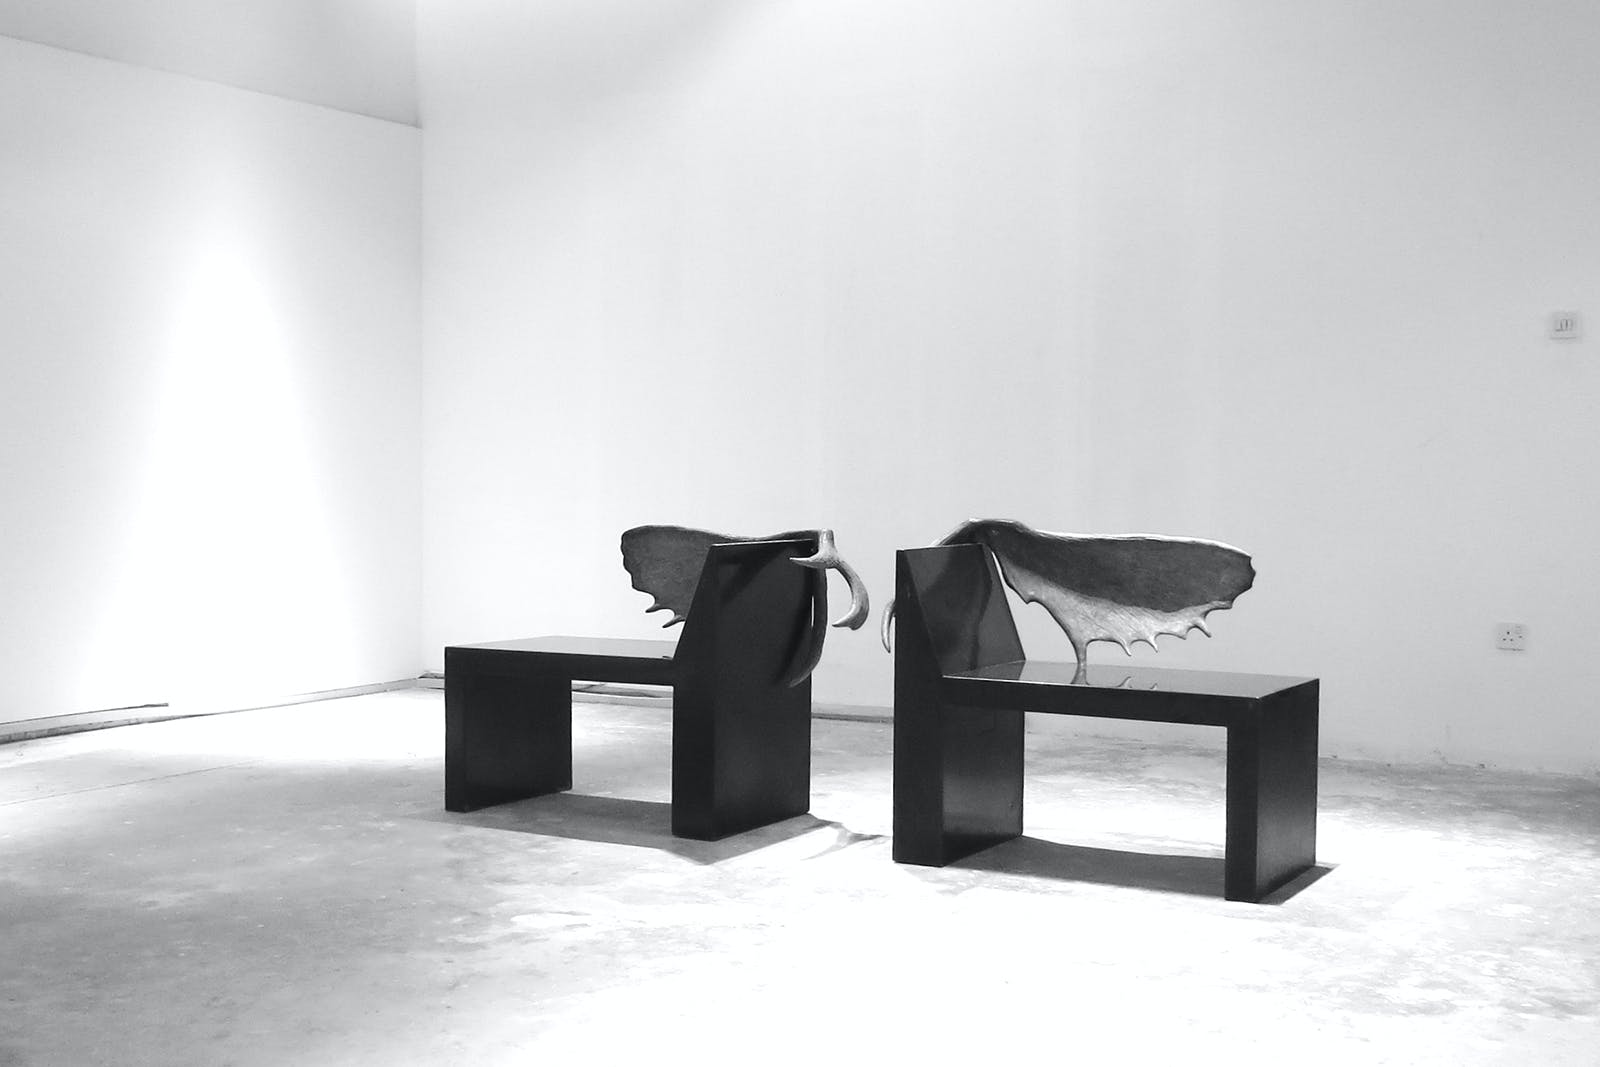 THE MONUMENTAL FURNITURE OF RICK OWENS